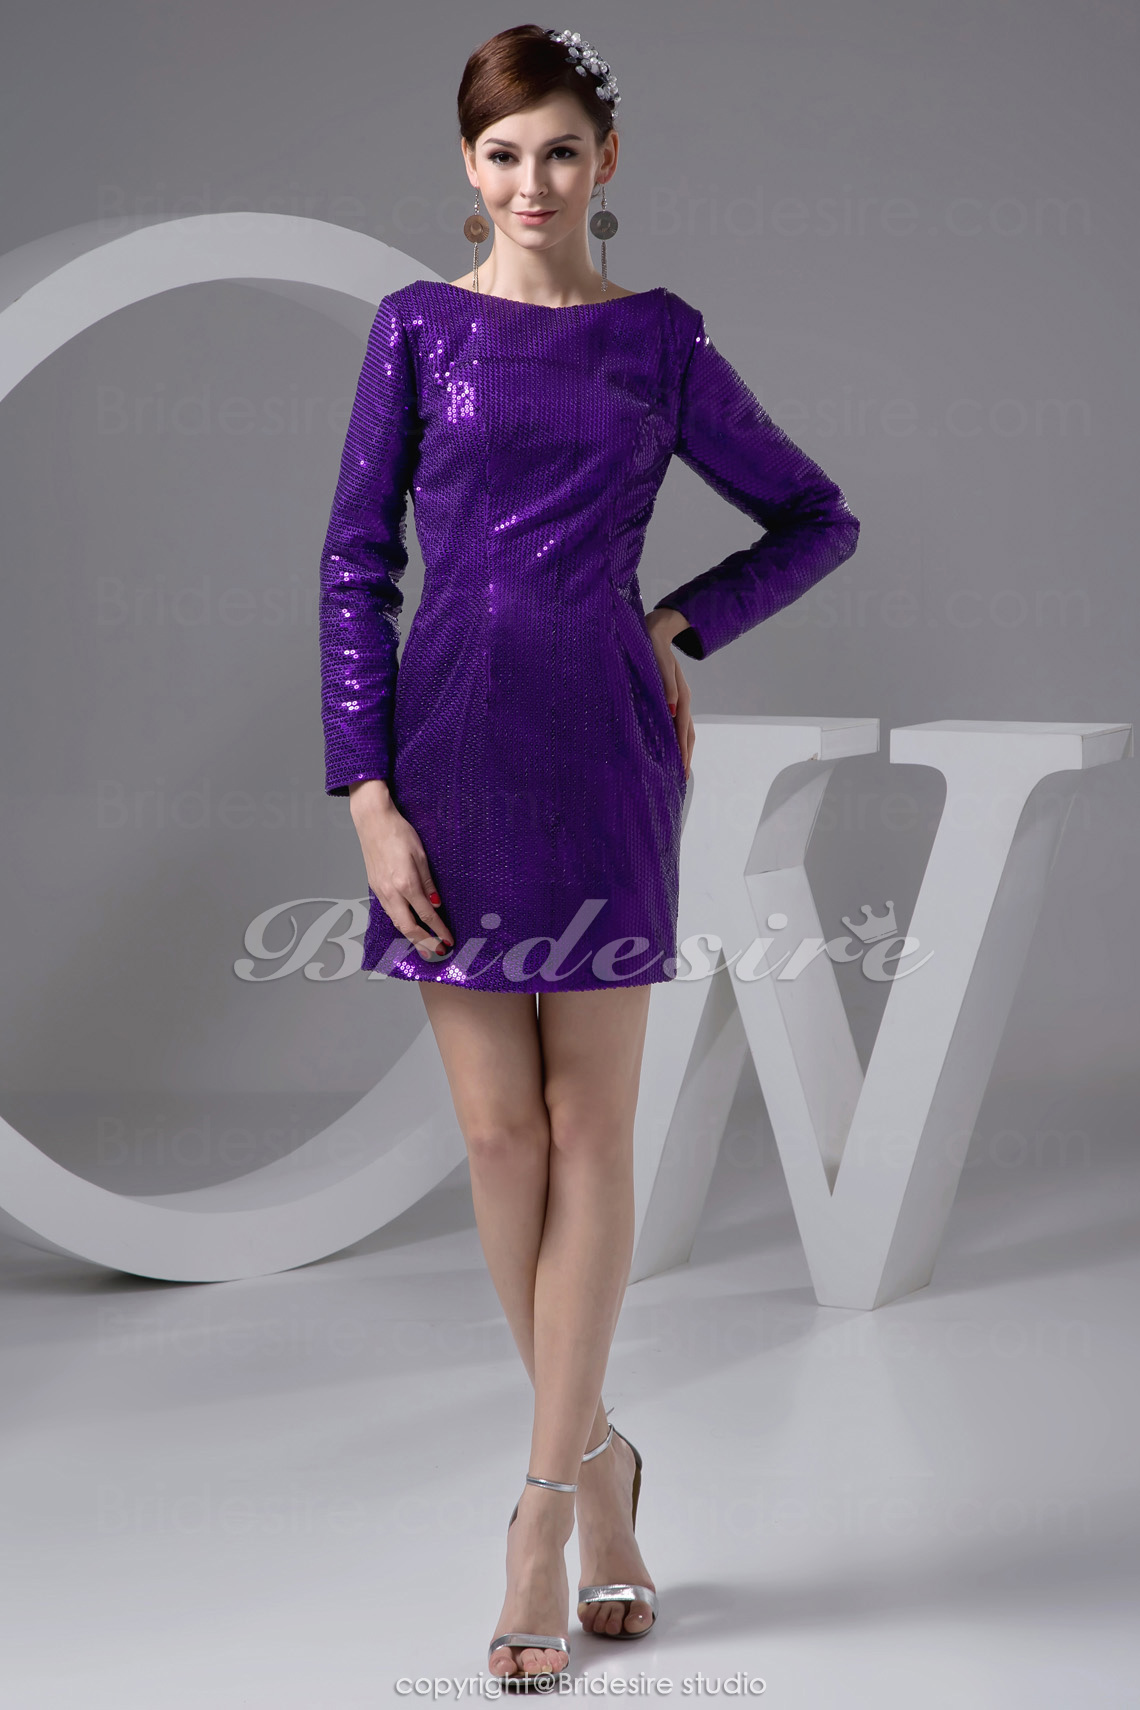 Sheath/Column Jewel Short/Mini Long Sleeve Sequined Dress